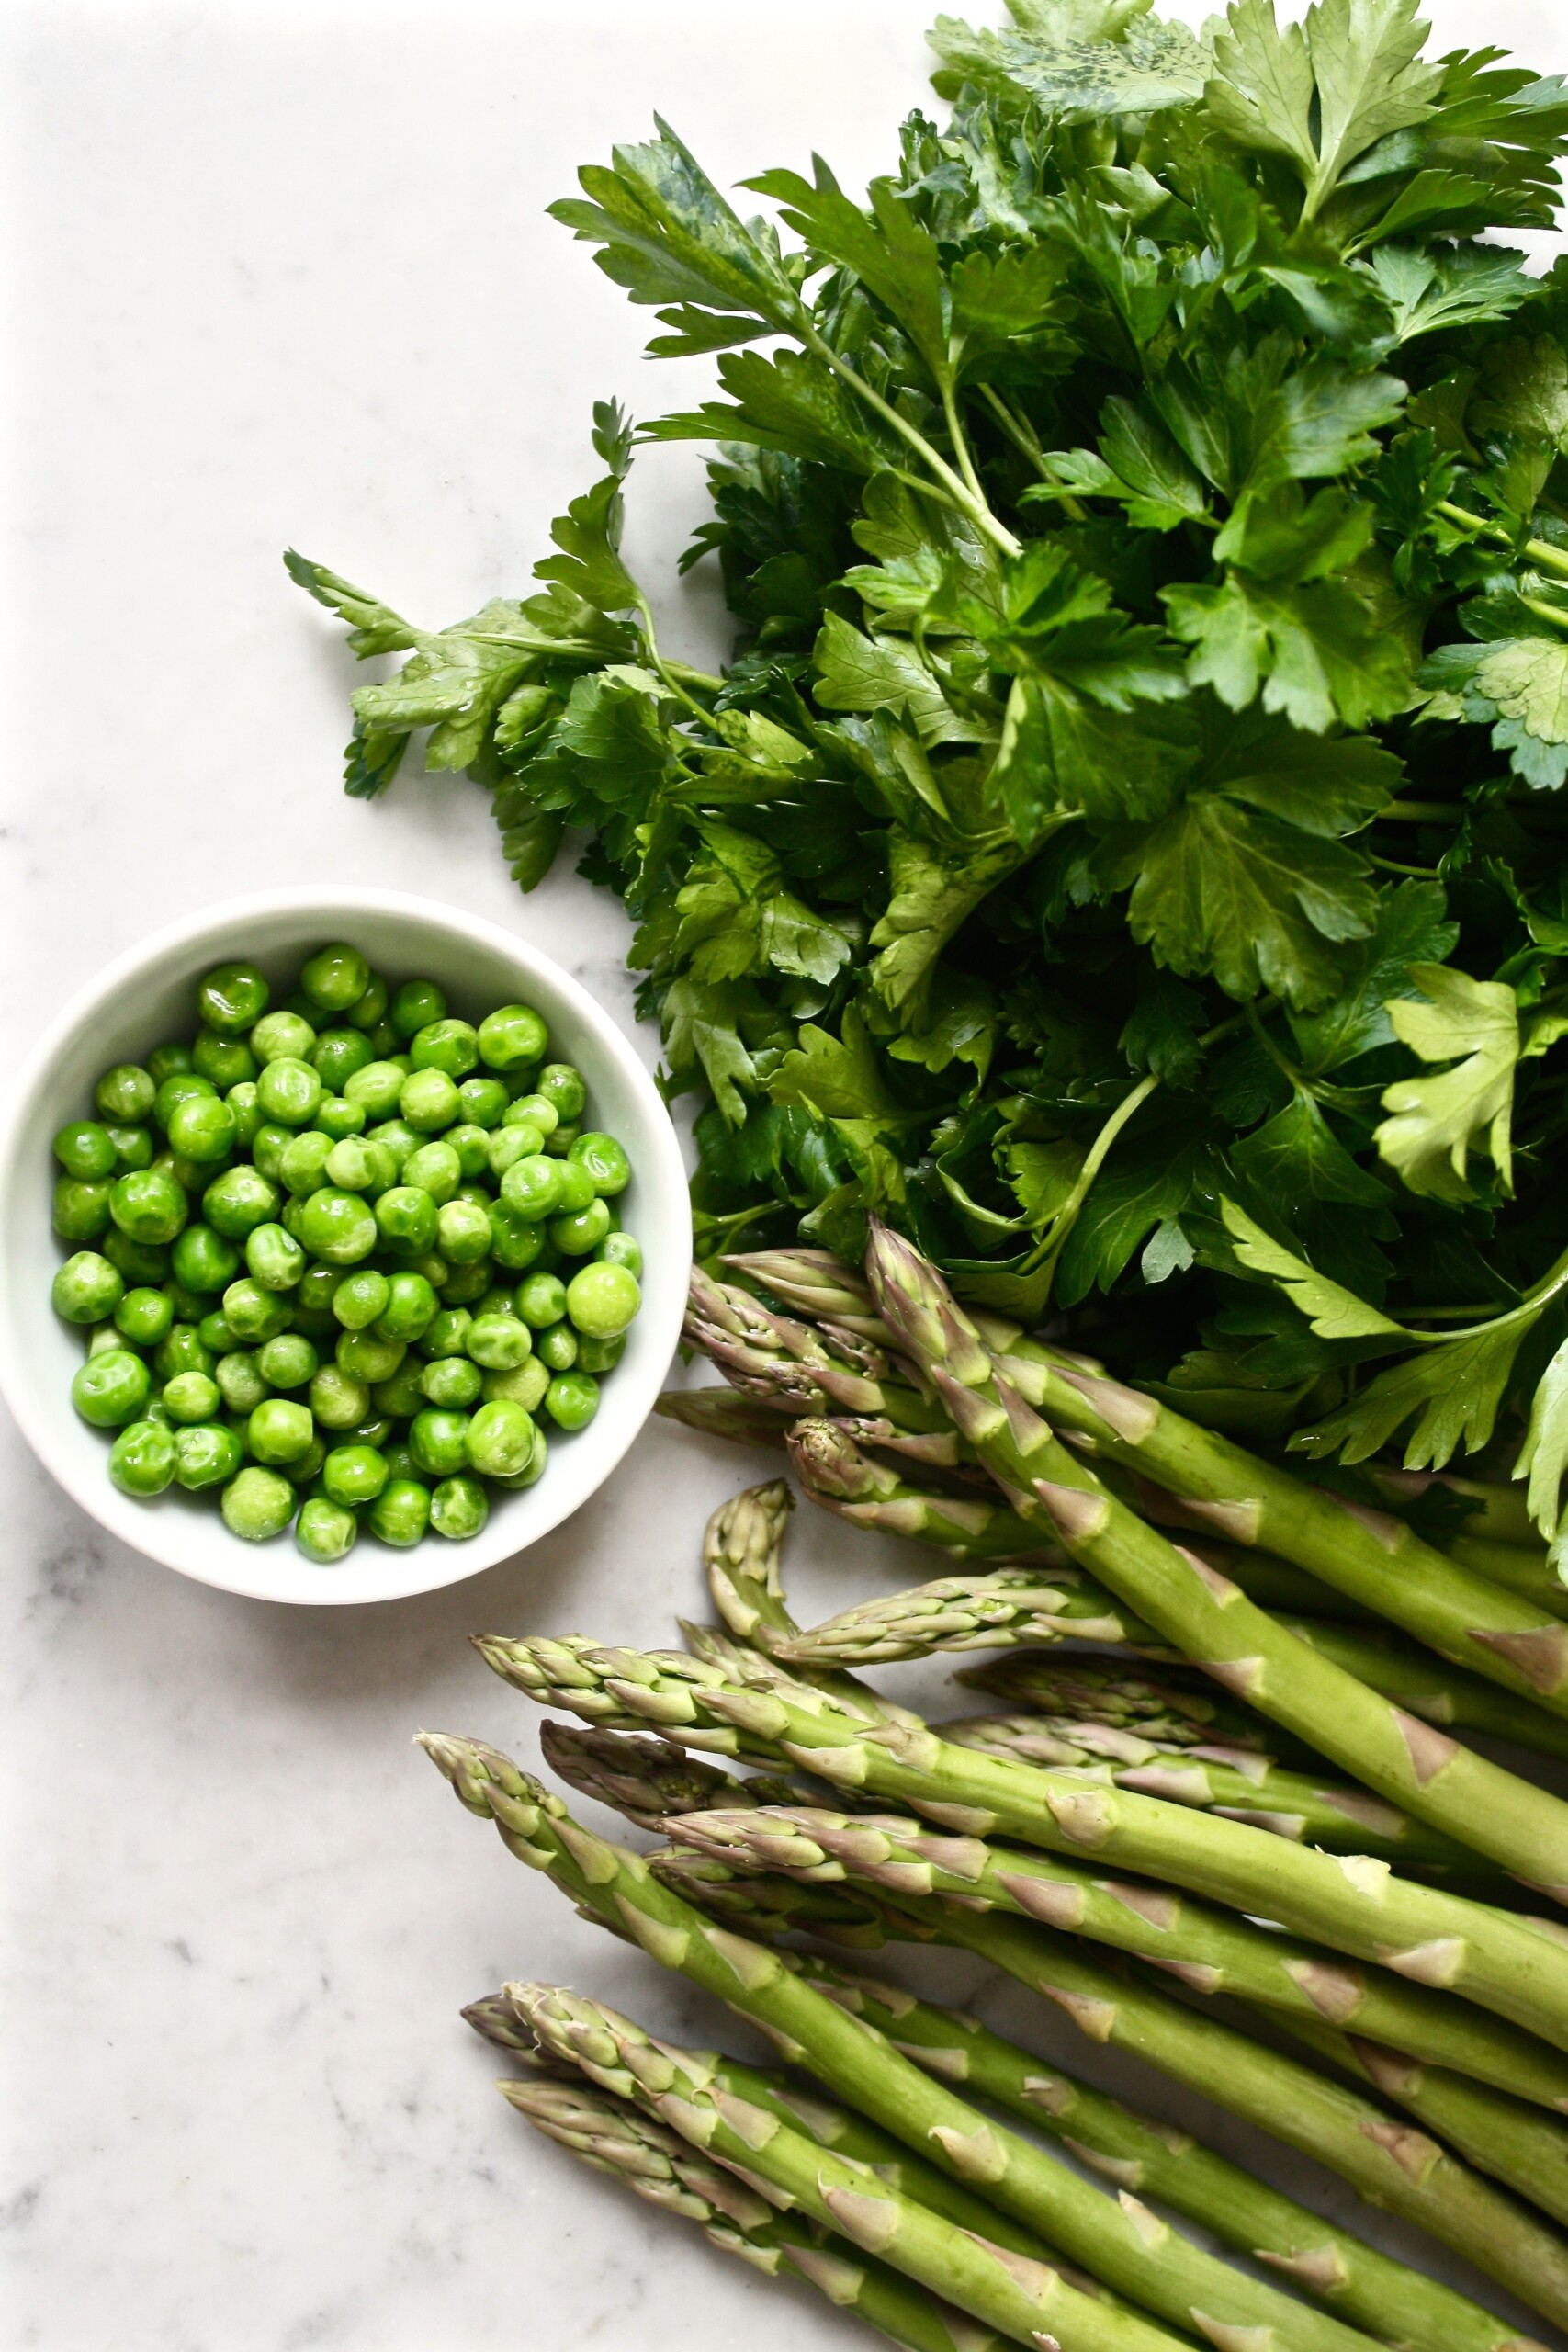 Photograph of asparagus, parsley and peas scattered on a marble table